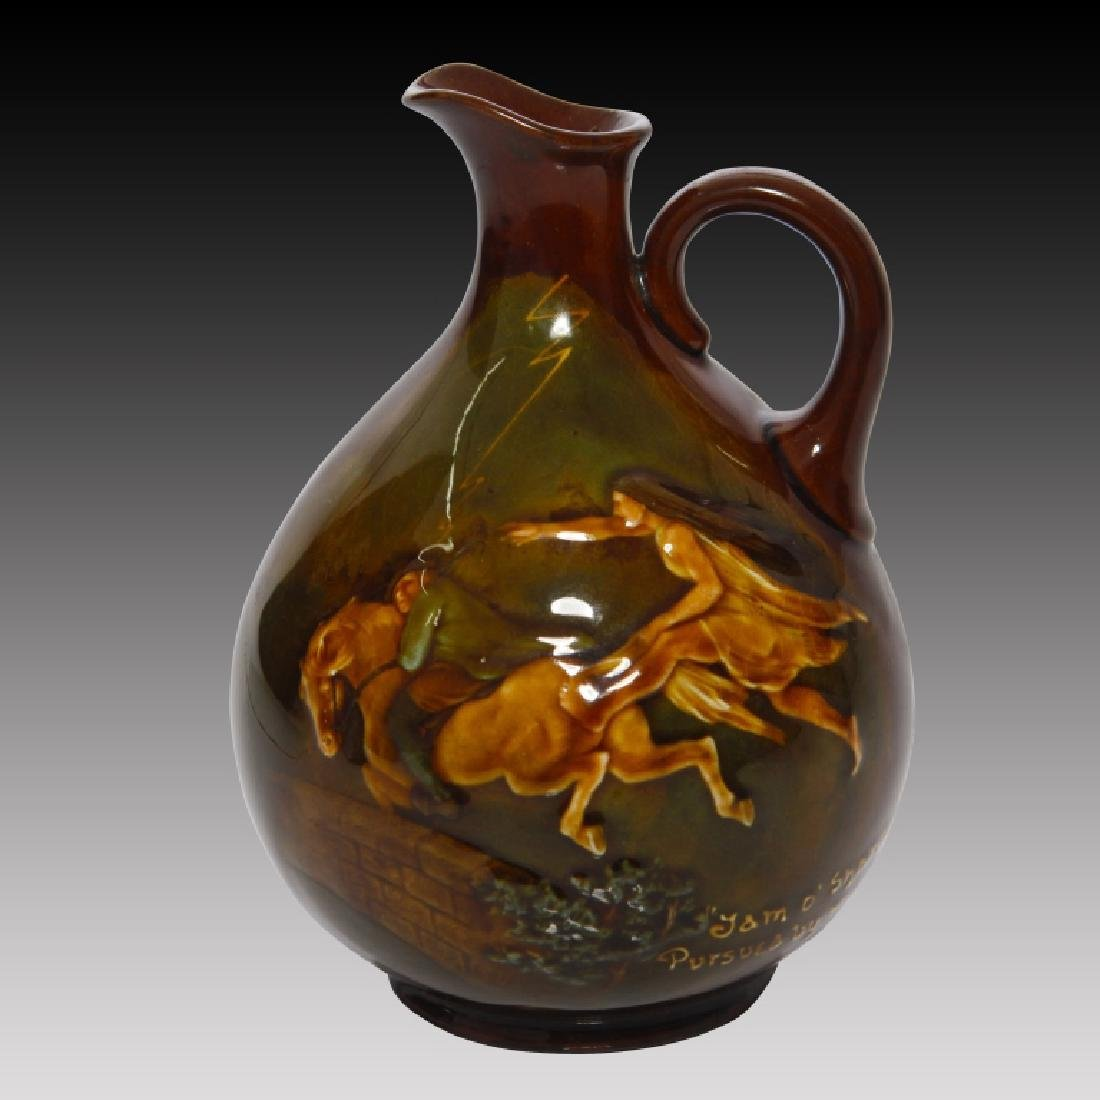 Doulton Kingsware Whiskey Flask with Tam O' Shanter